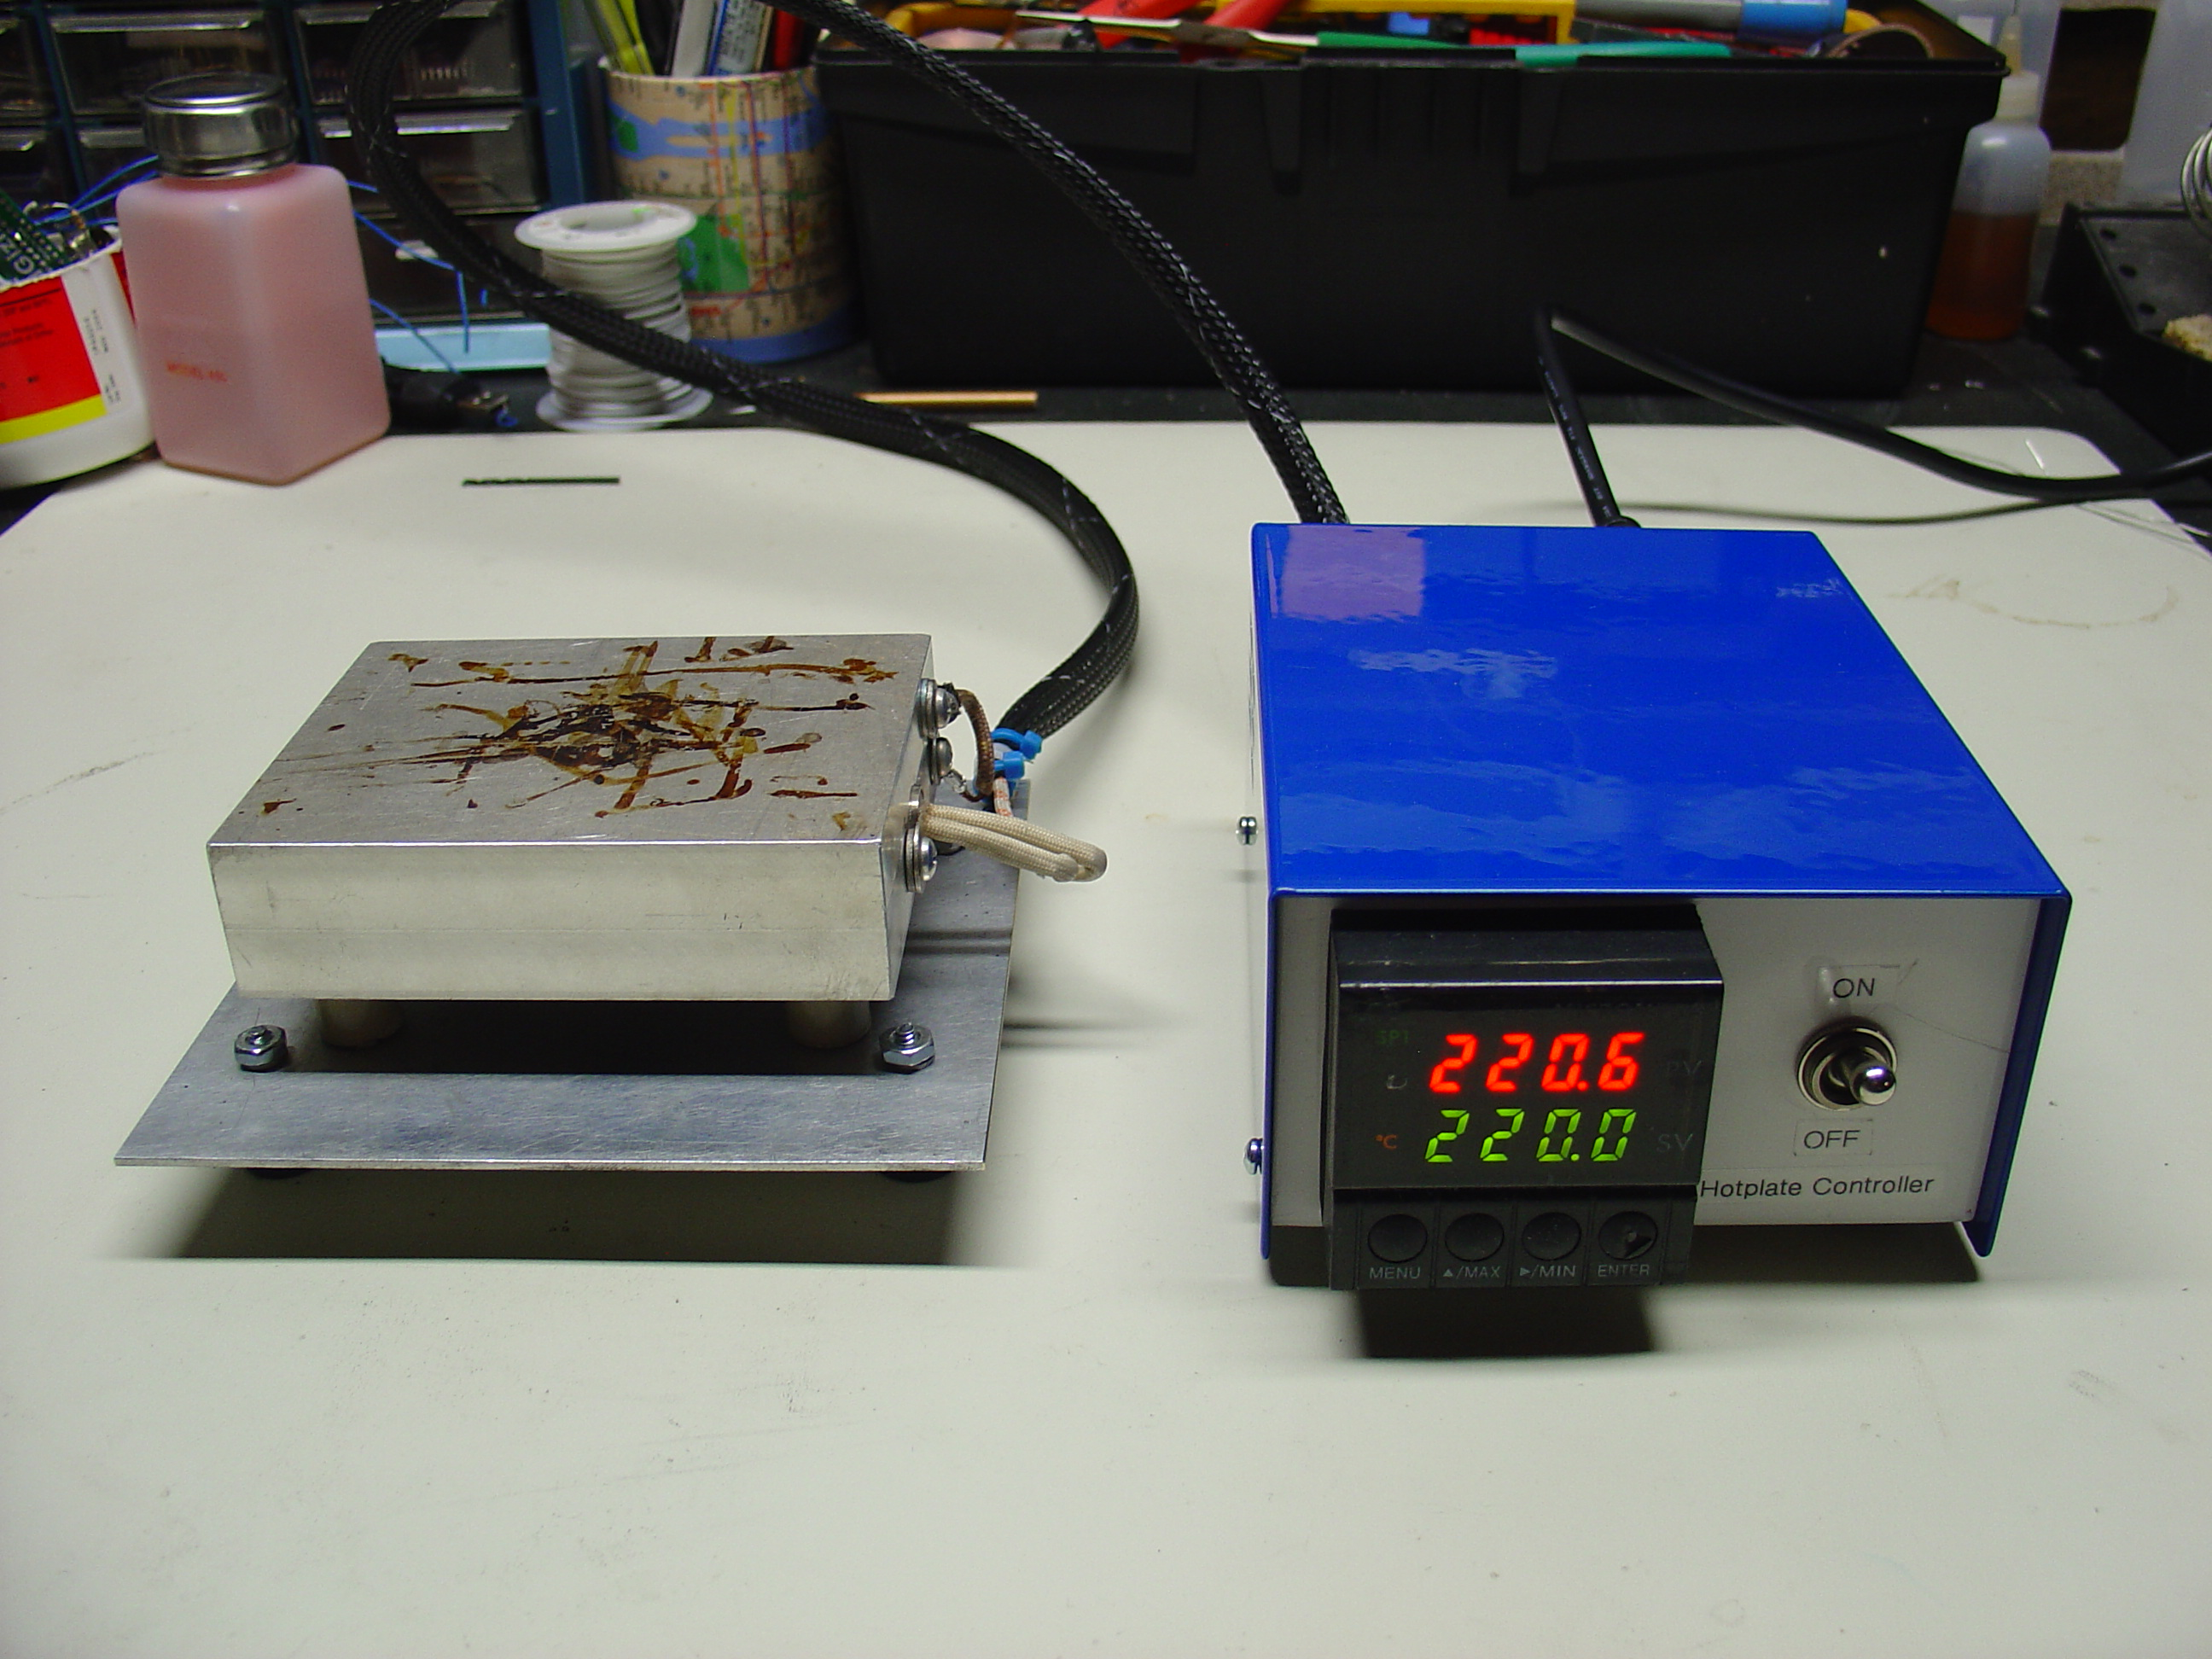 Diy Pid Controlled Soldering Hotplate Mightyohm